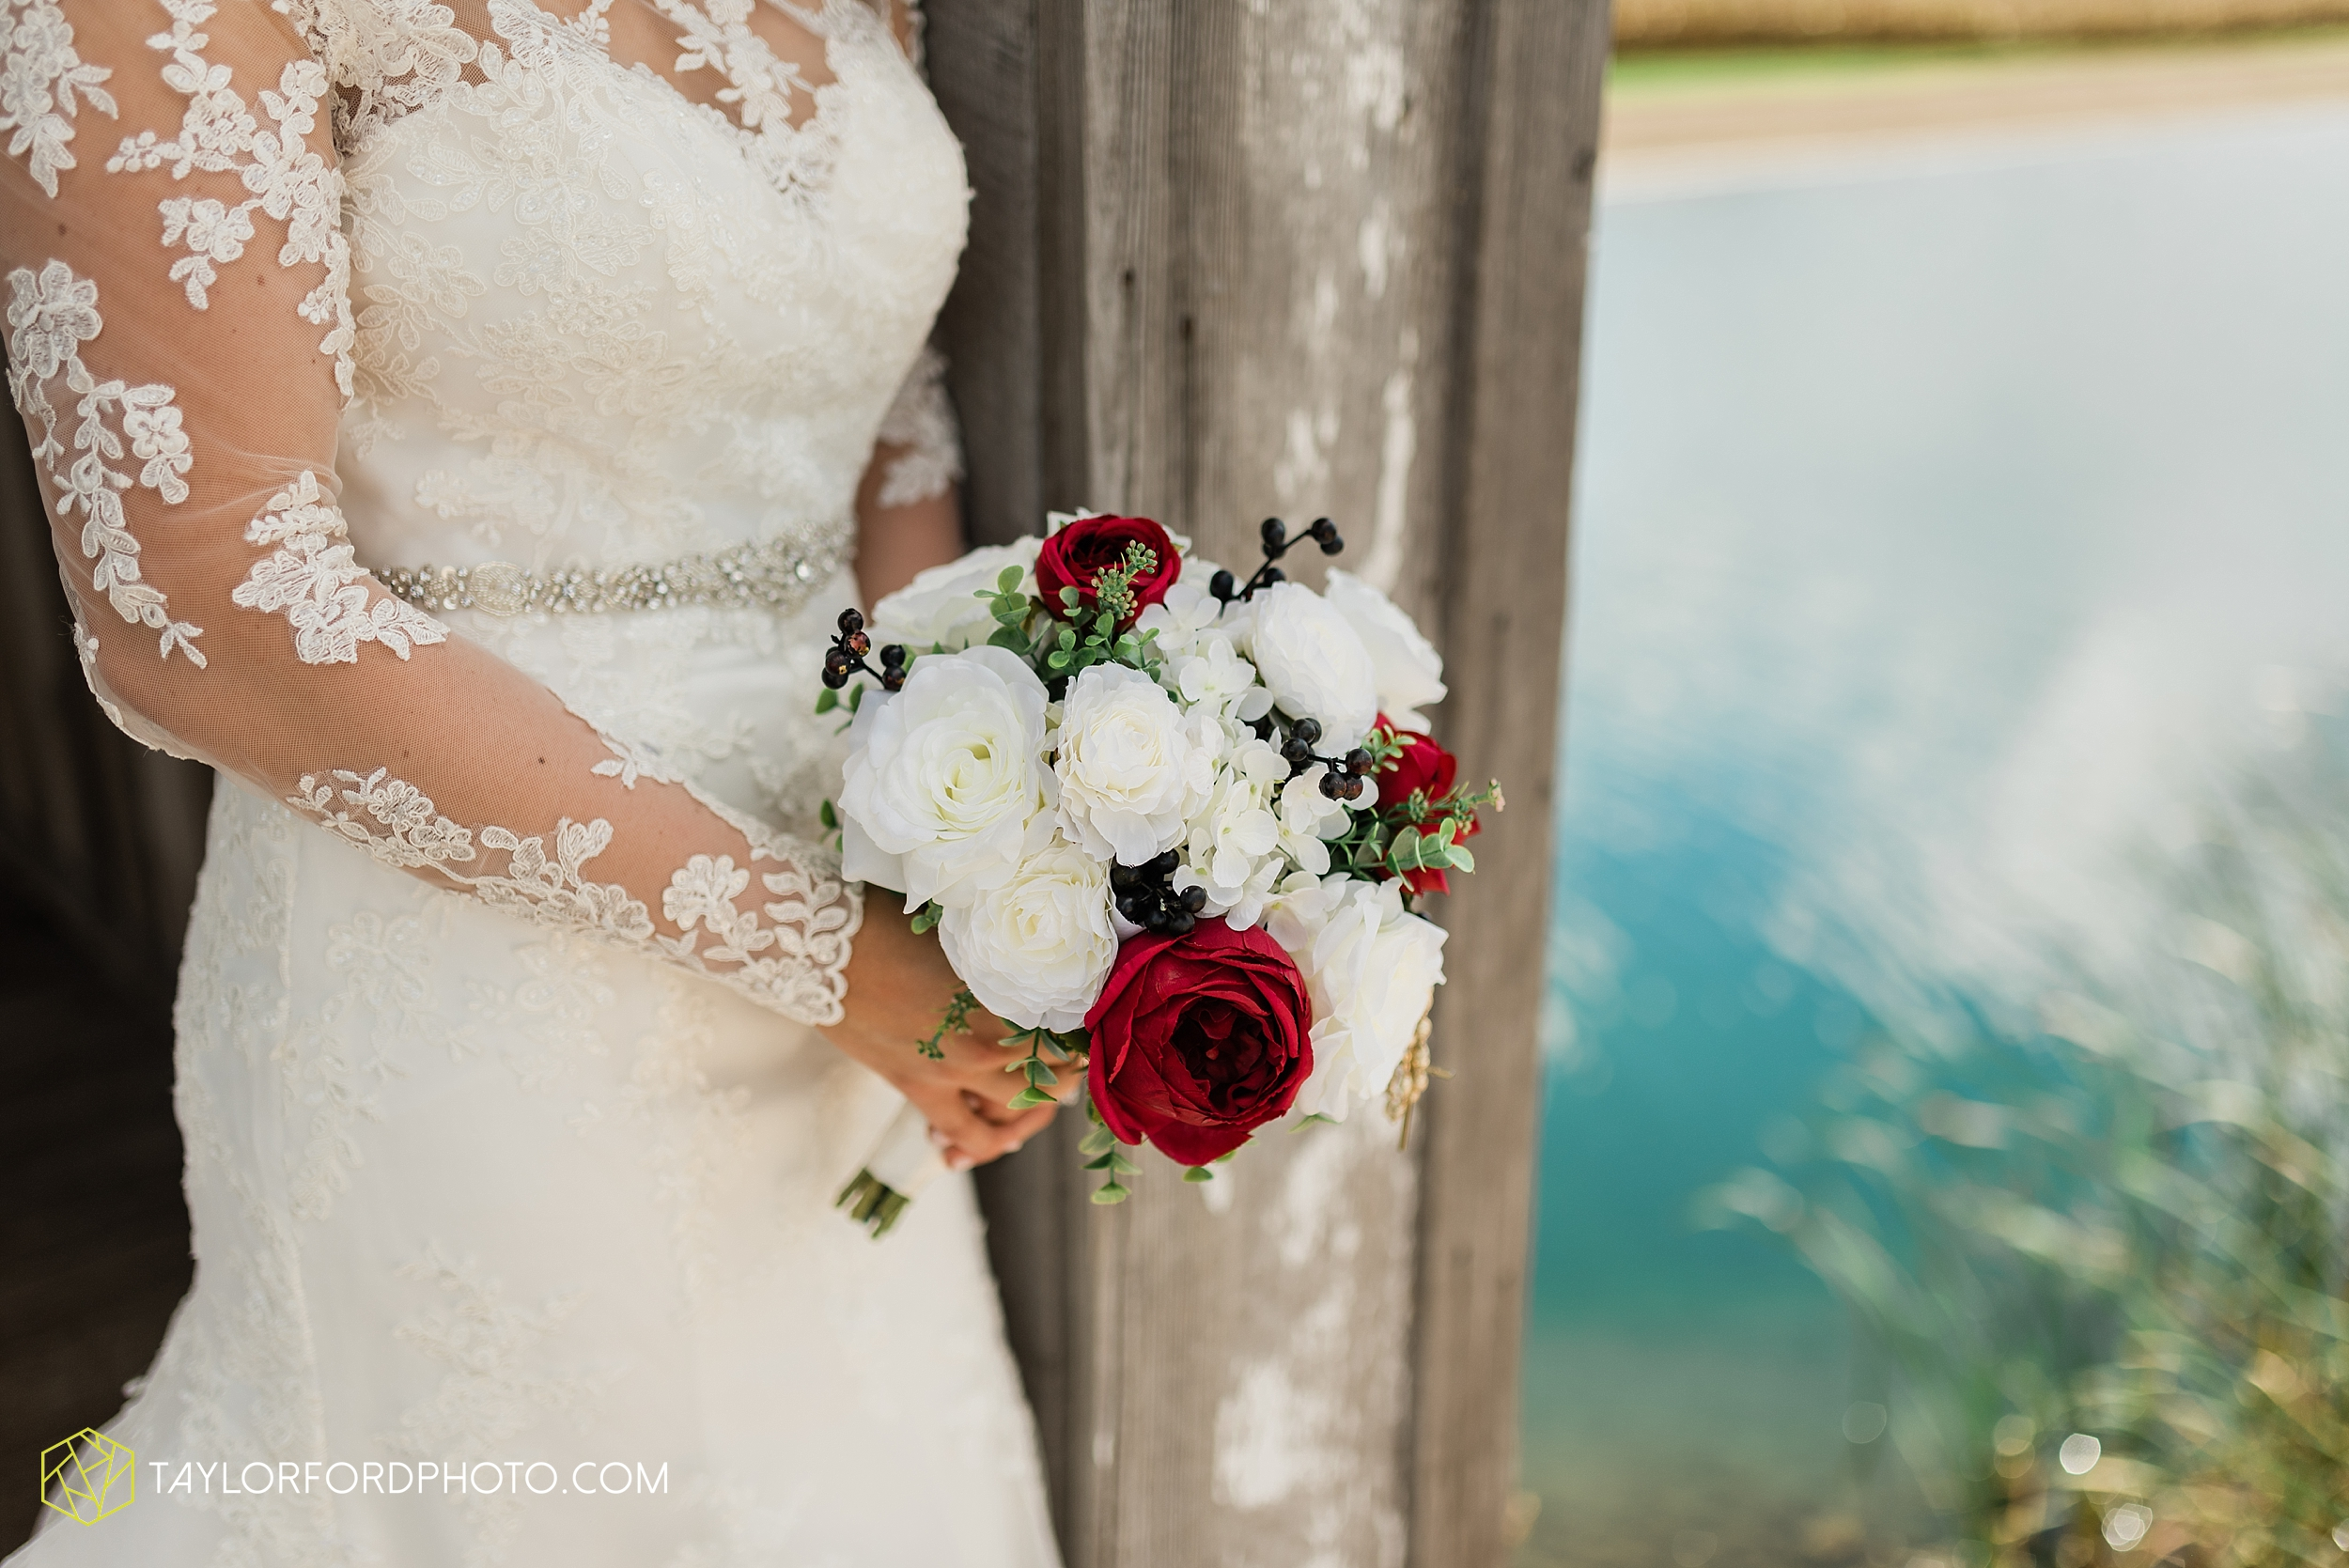 gayle-rayman-mike-steele-ottoville-ohio-wedding-immaculate-conception-parish-center-wedding-sycamore-lake-winery-wannamachers-photographer-taylor-ford-photography_0406.jpg